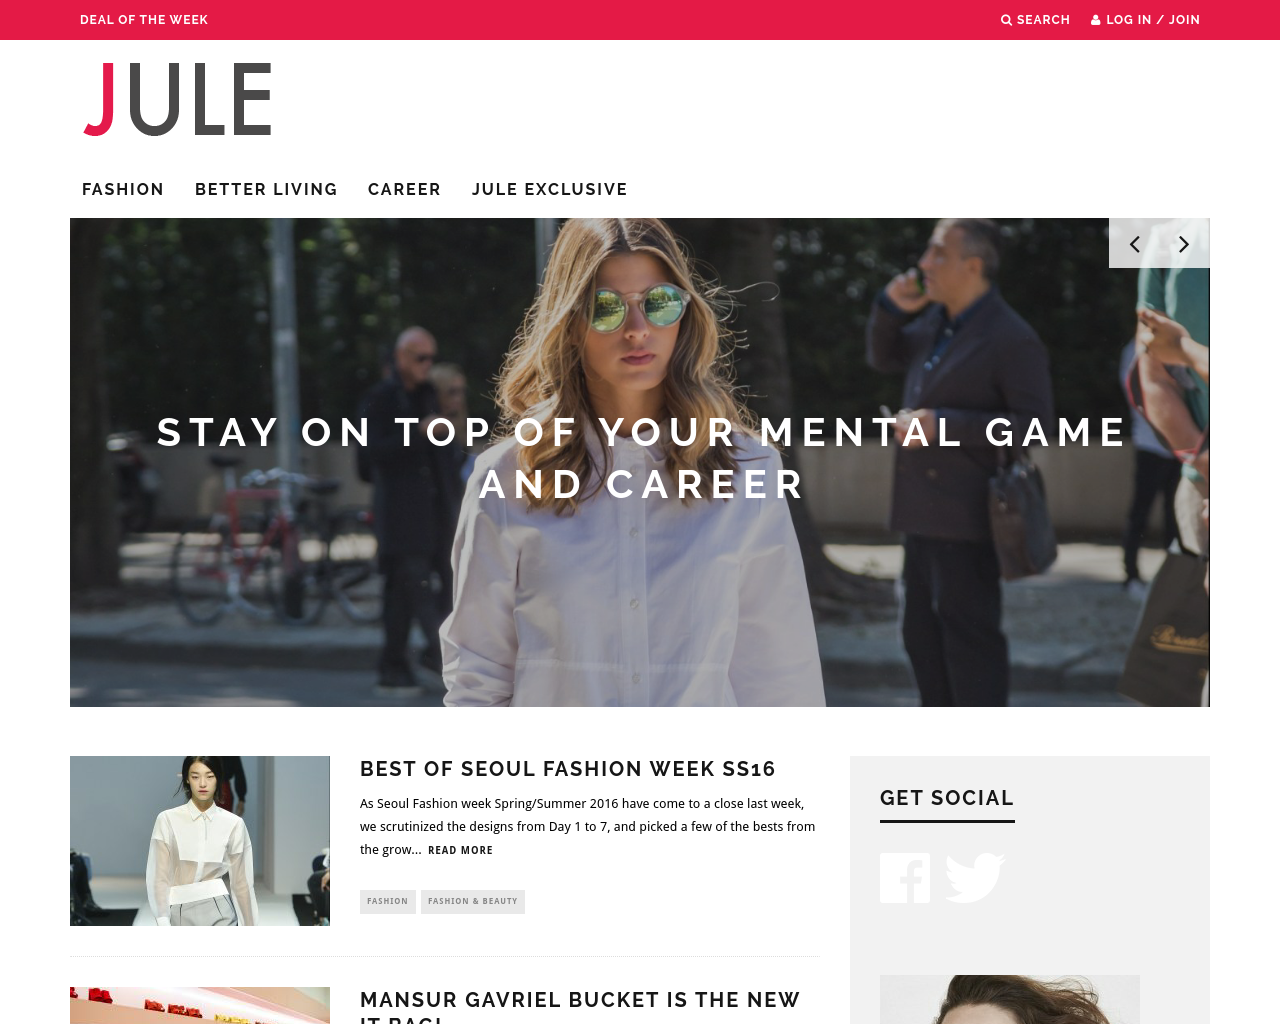 Jule-Magazine-Advertising-Reviews-Pricing